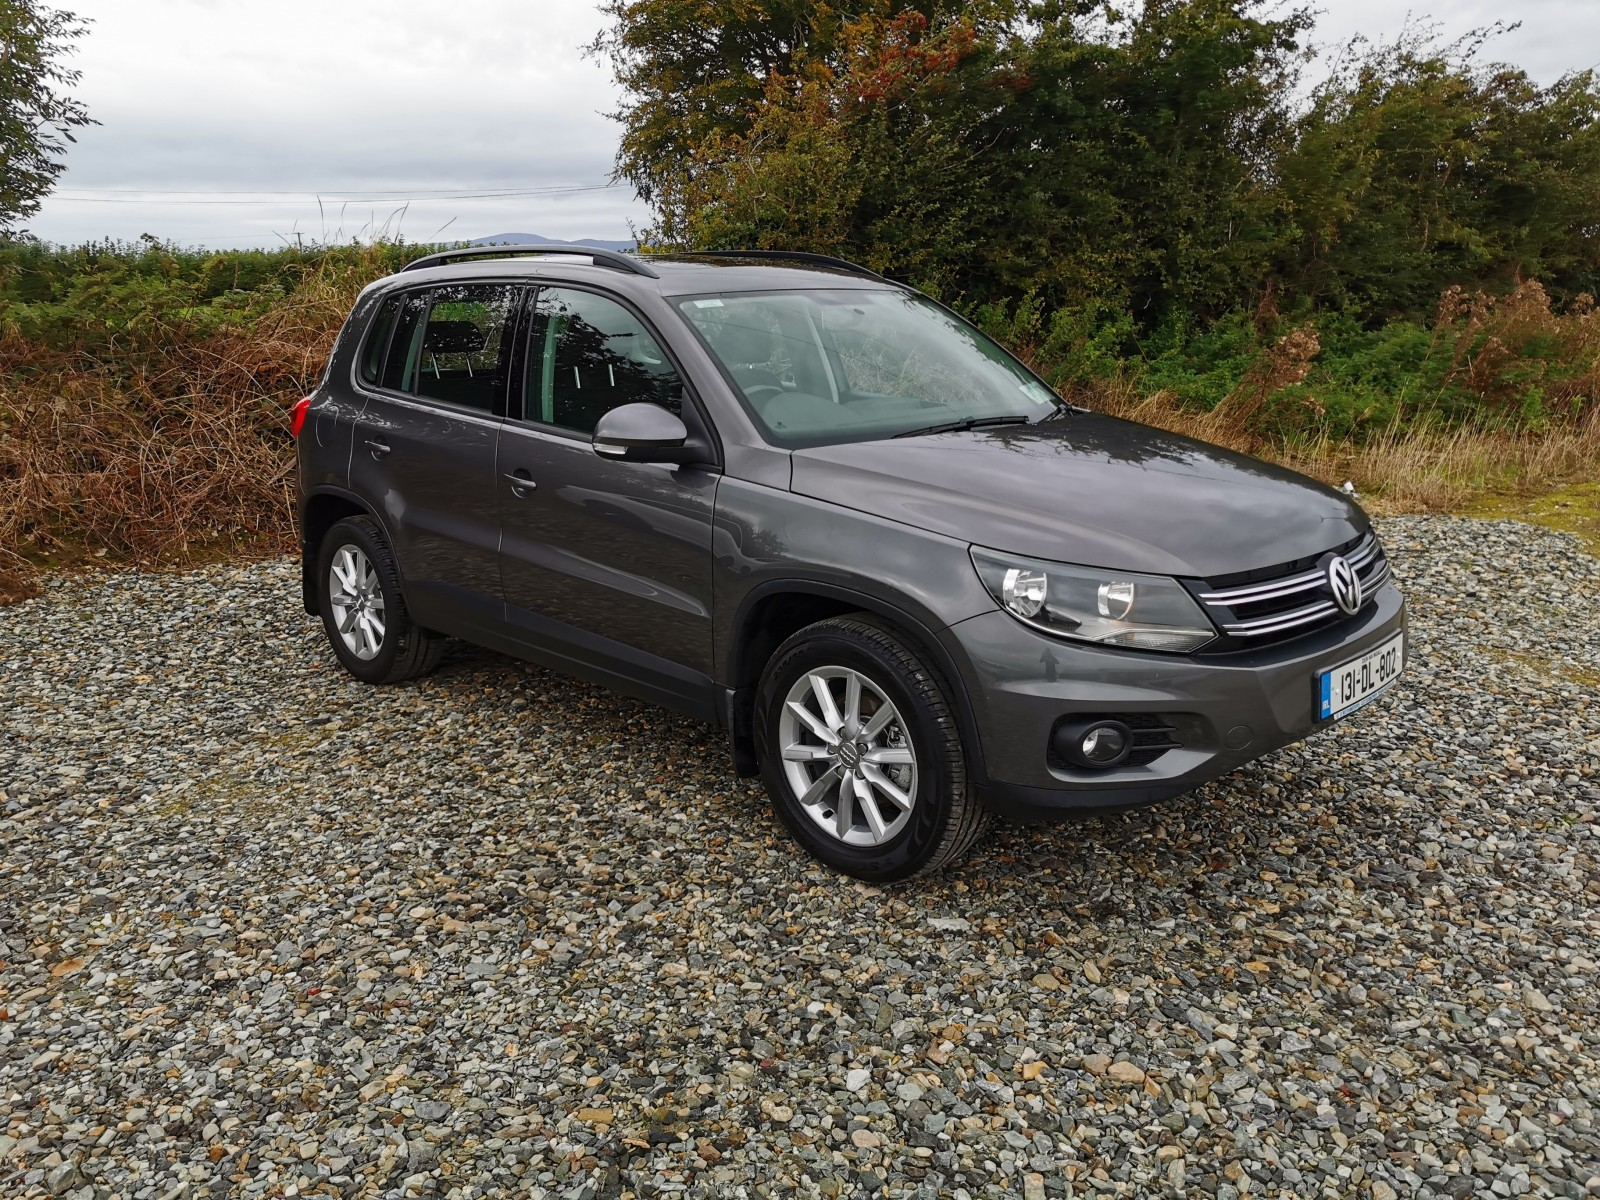 2013 Volkswagen Tiguan SE 4 MOTION Diesel Manual – BC Autosales 17A Airfield Road, Eglinton, Londonderry BT47 3PZ, UK